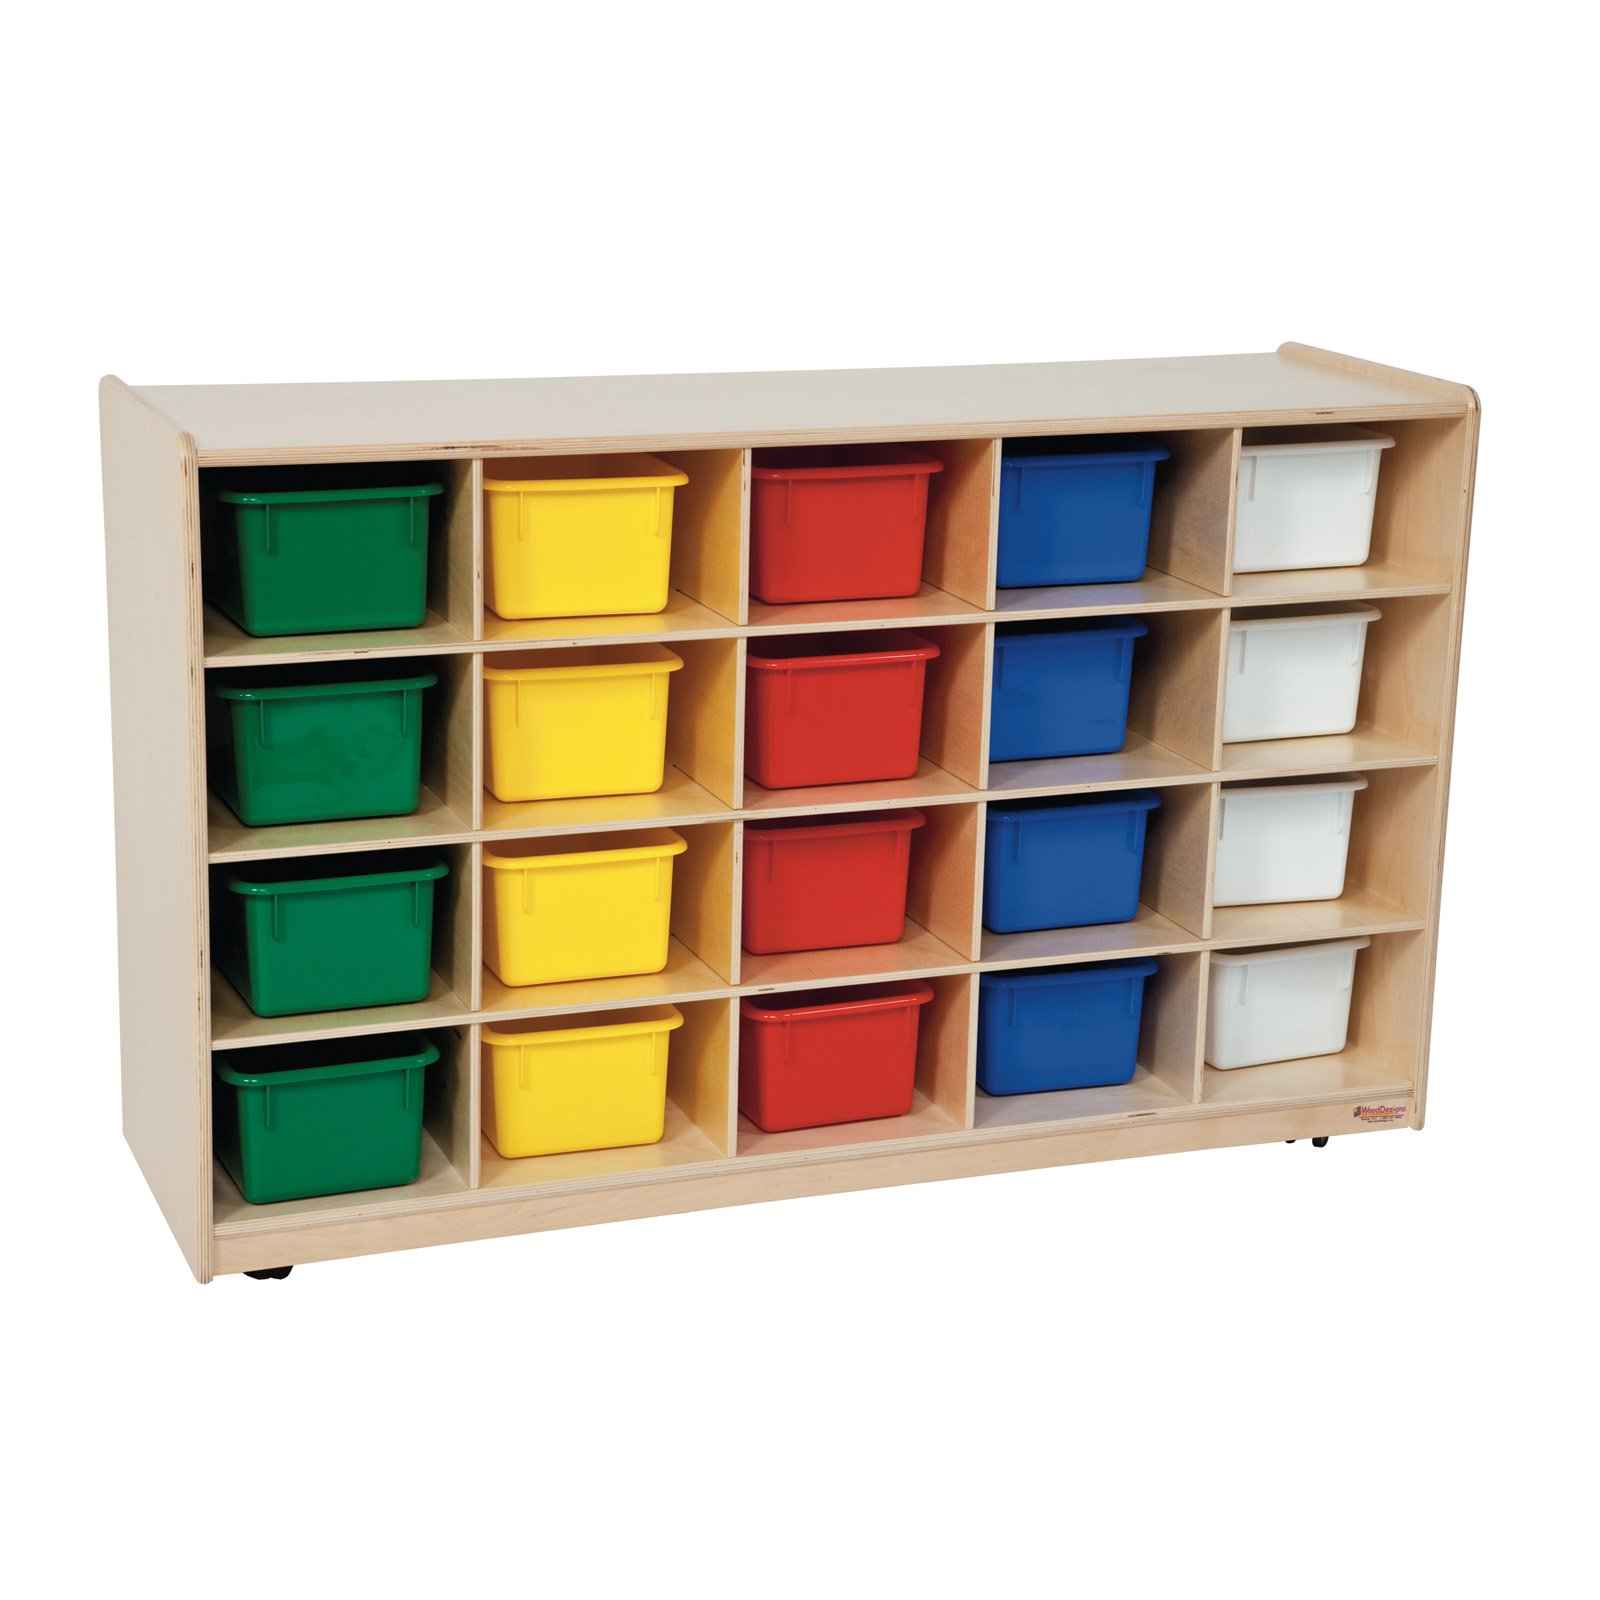 Wood Designs Natural 20 Tray Storage with Trays